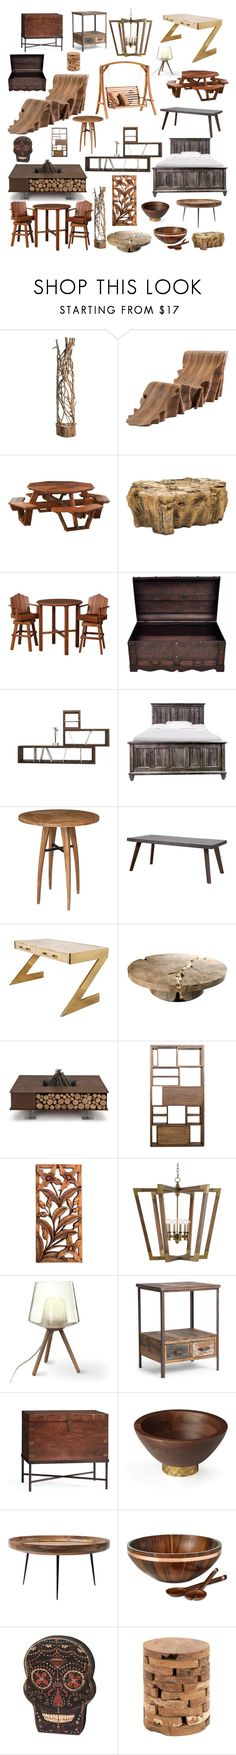 """Deco, wood chic"" by nadinezvous ❤ liked on Polyvore featuring interior, interiors, interior design, home, home decor, interior decorating, Altea, SecondoMe, DutchCrafters and Scandola Marmi"